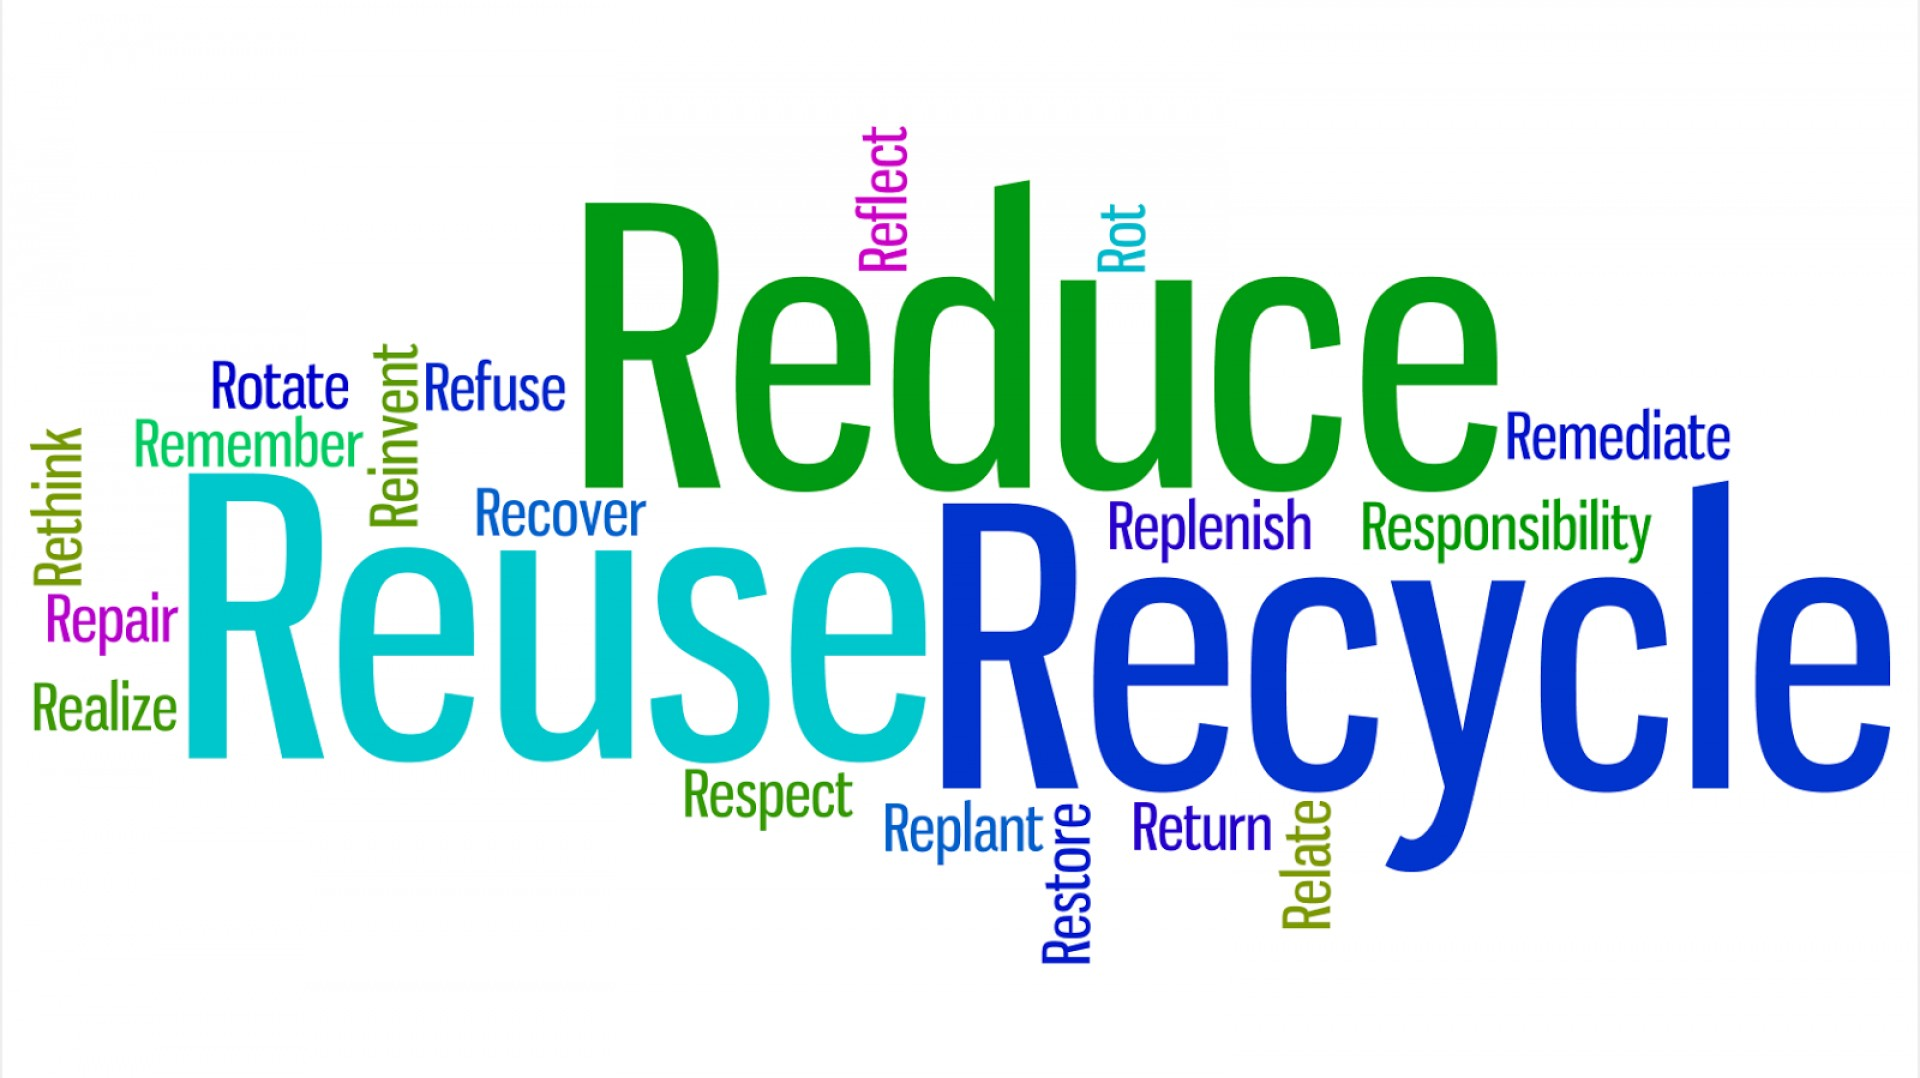 014 Rewordsreducereuserecycle Essay Example On Reduce Reuse Stirring Recycle Short In Hindi English 1920